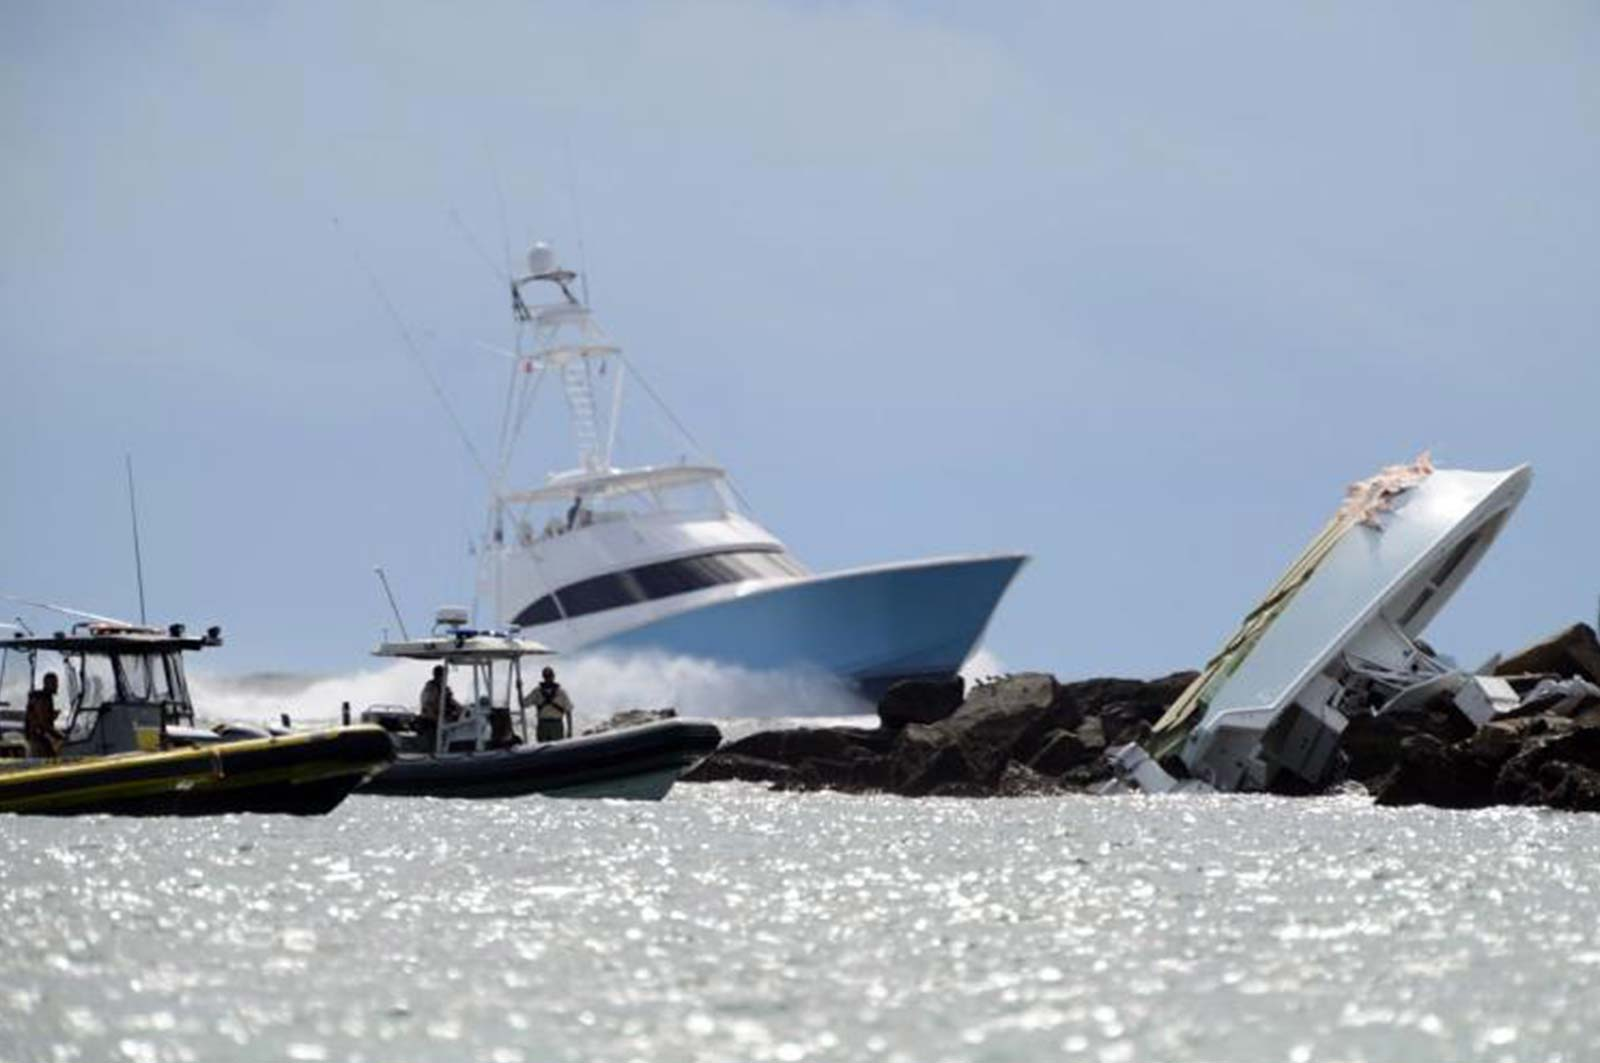 boating-accident Boating Accidents and Maritime Law | The Mason Law Firm